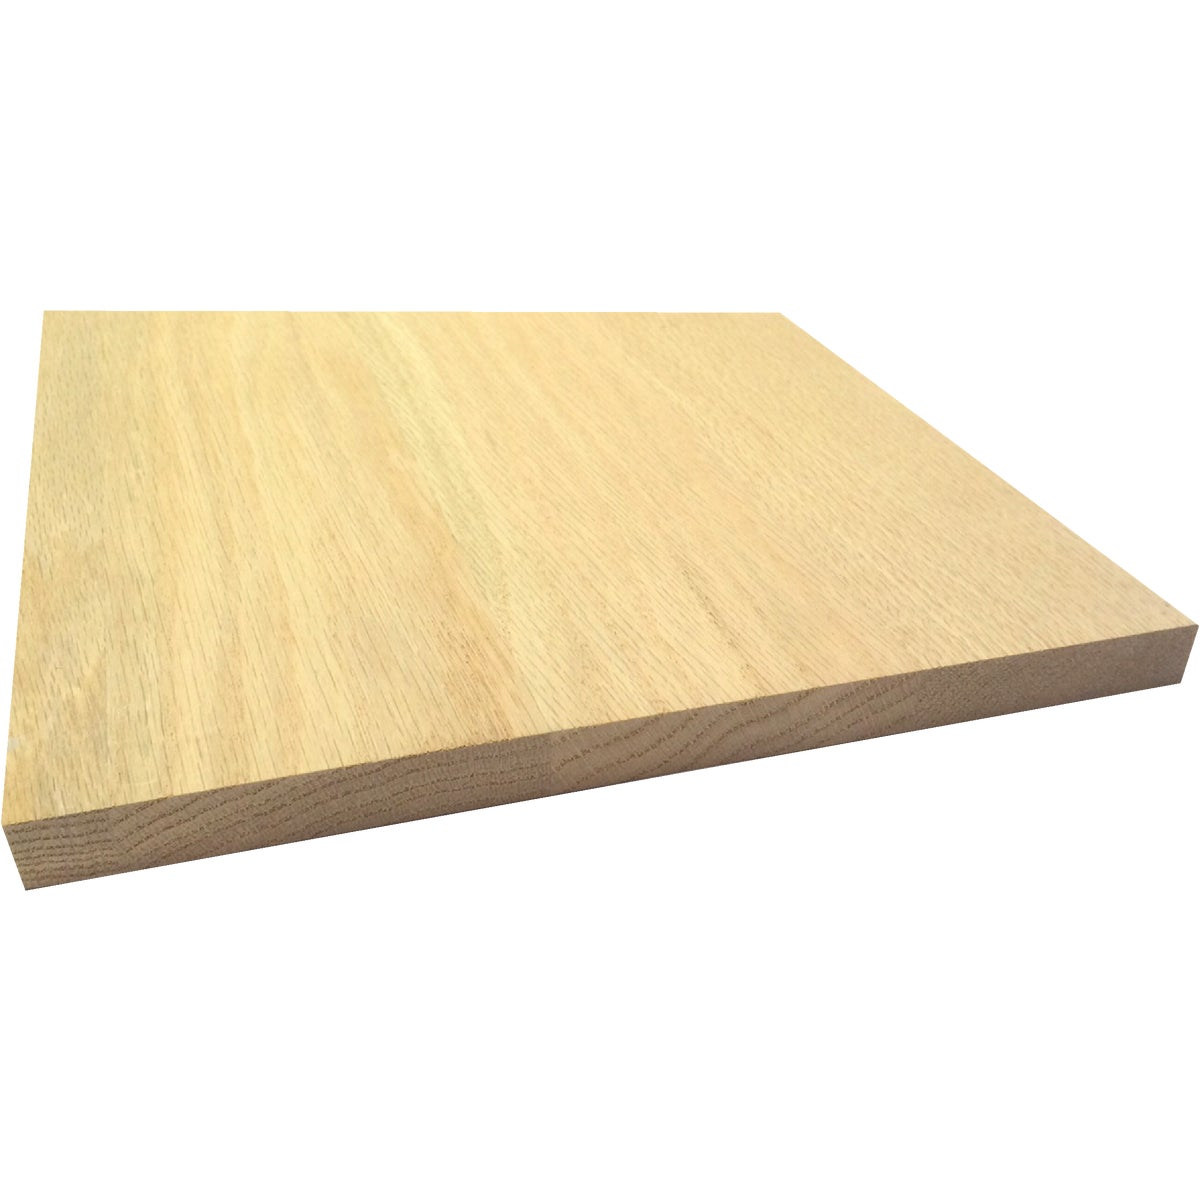 "1X12""X3' OAK BOARD - PB19544 by Waddell Mfg Company"